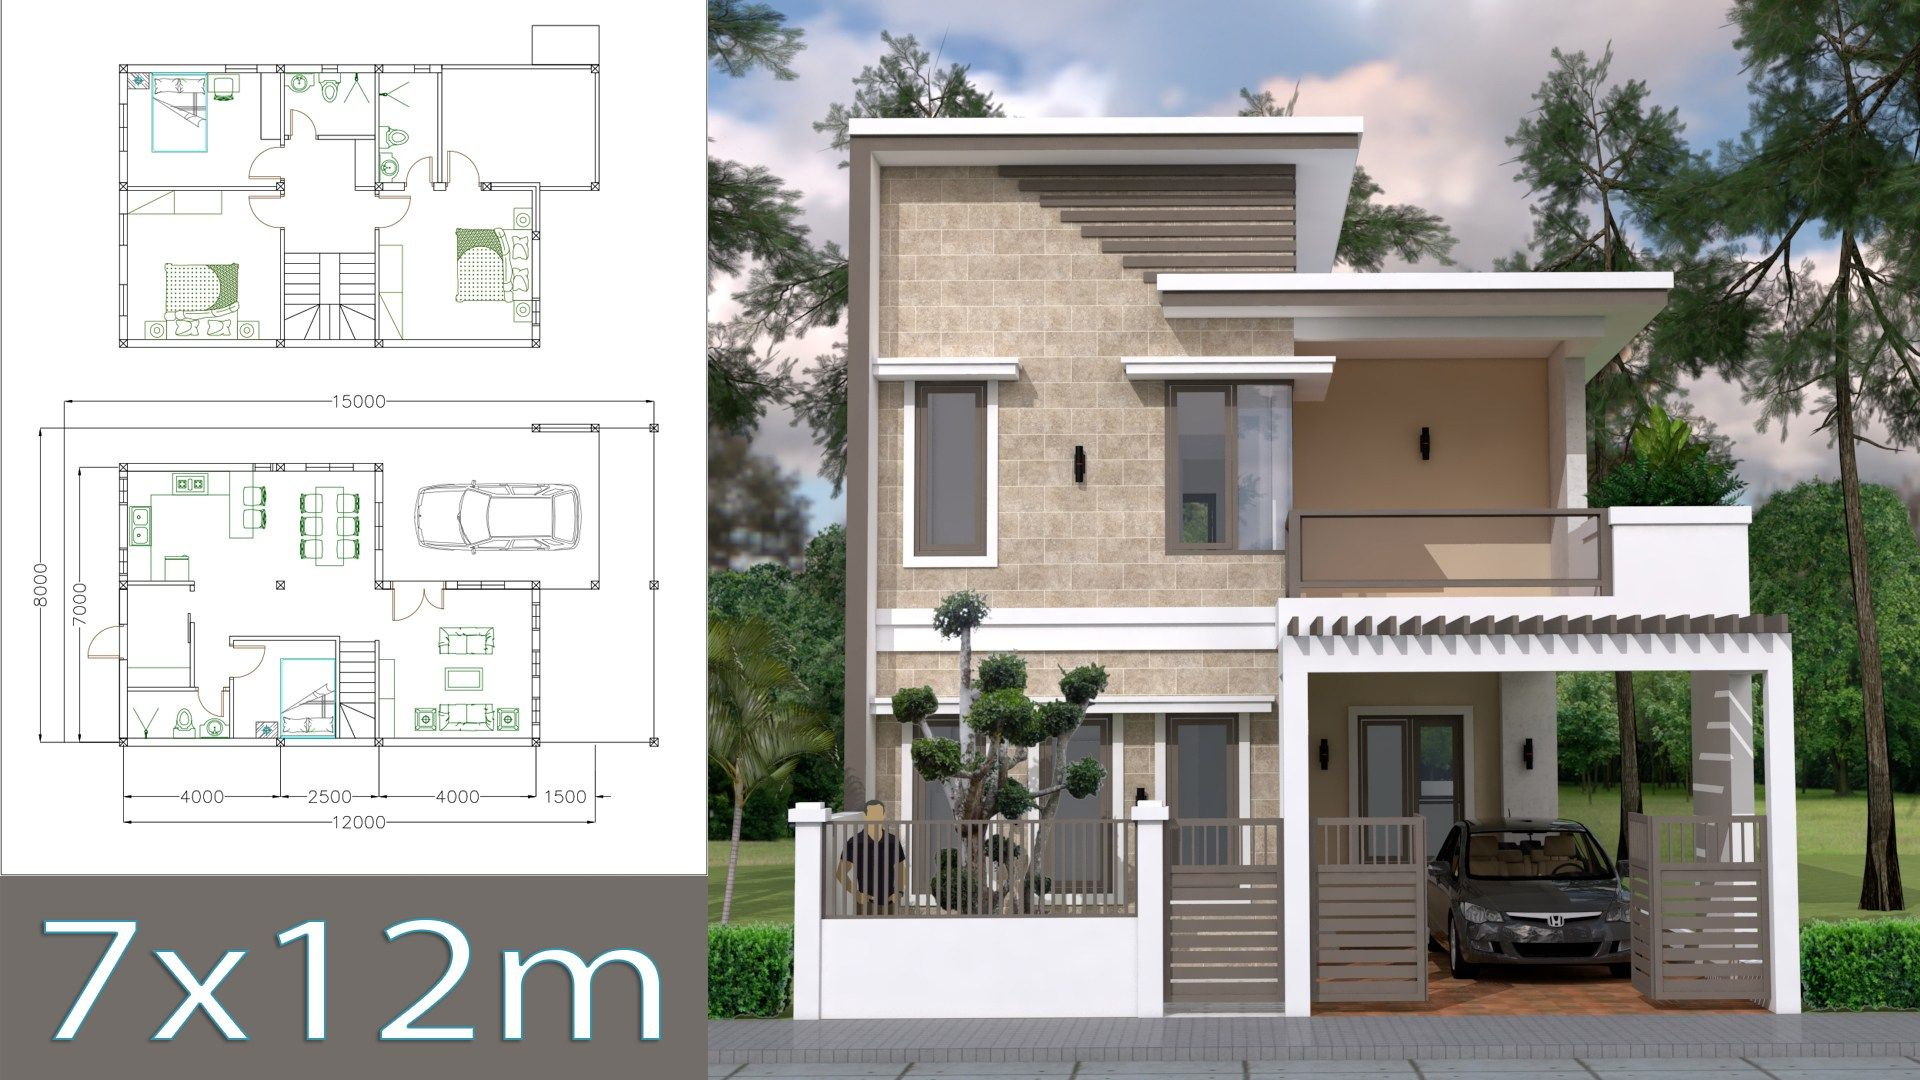 Home Design Plan 7x12m With 4 Bedrooms Plot 8x15 2 Storey House Design Modern House Plans